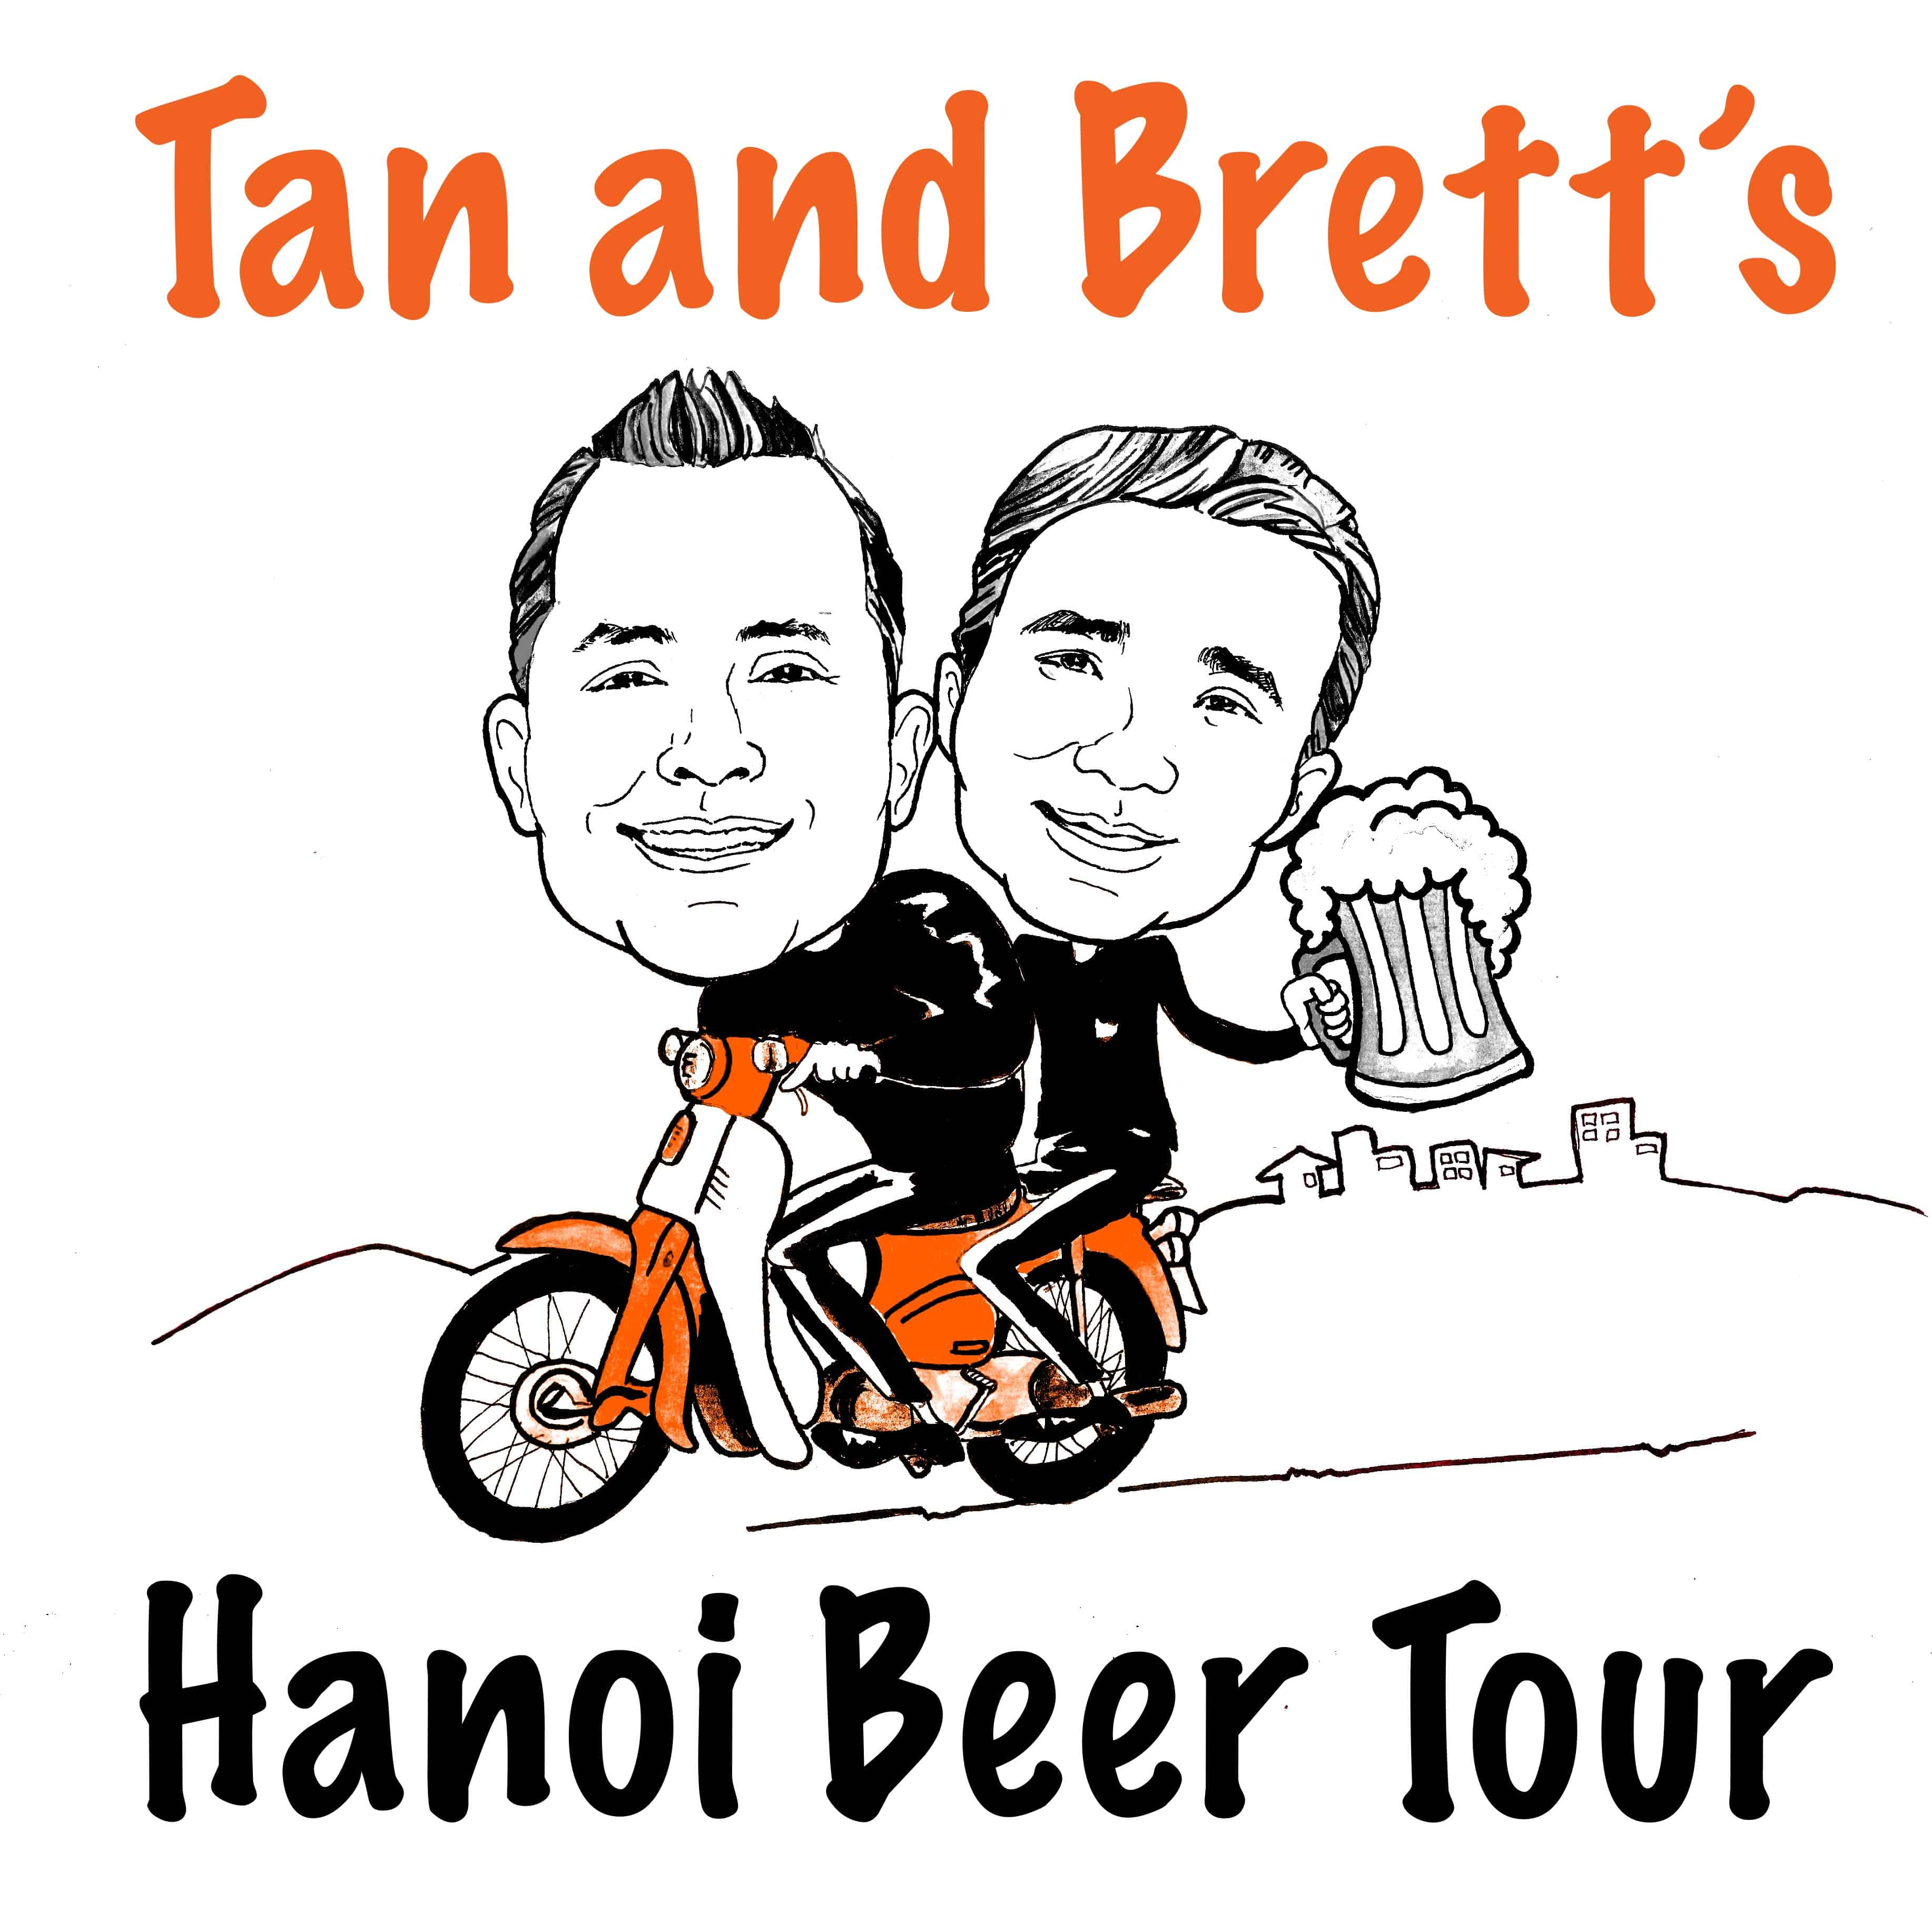 Tan and Brett's